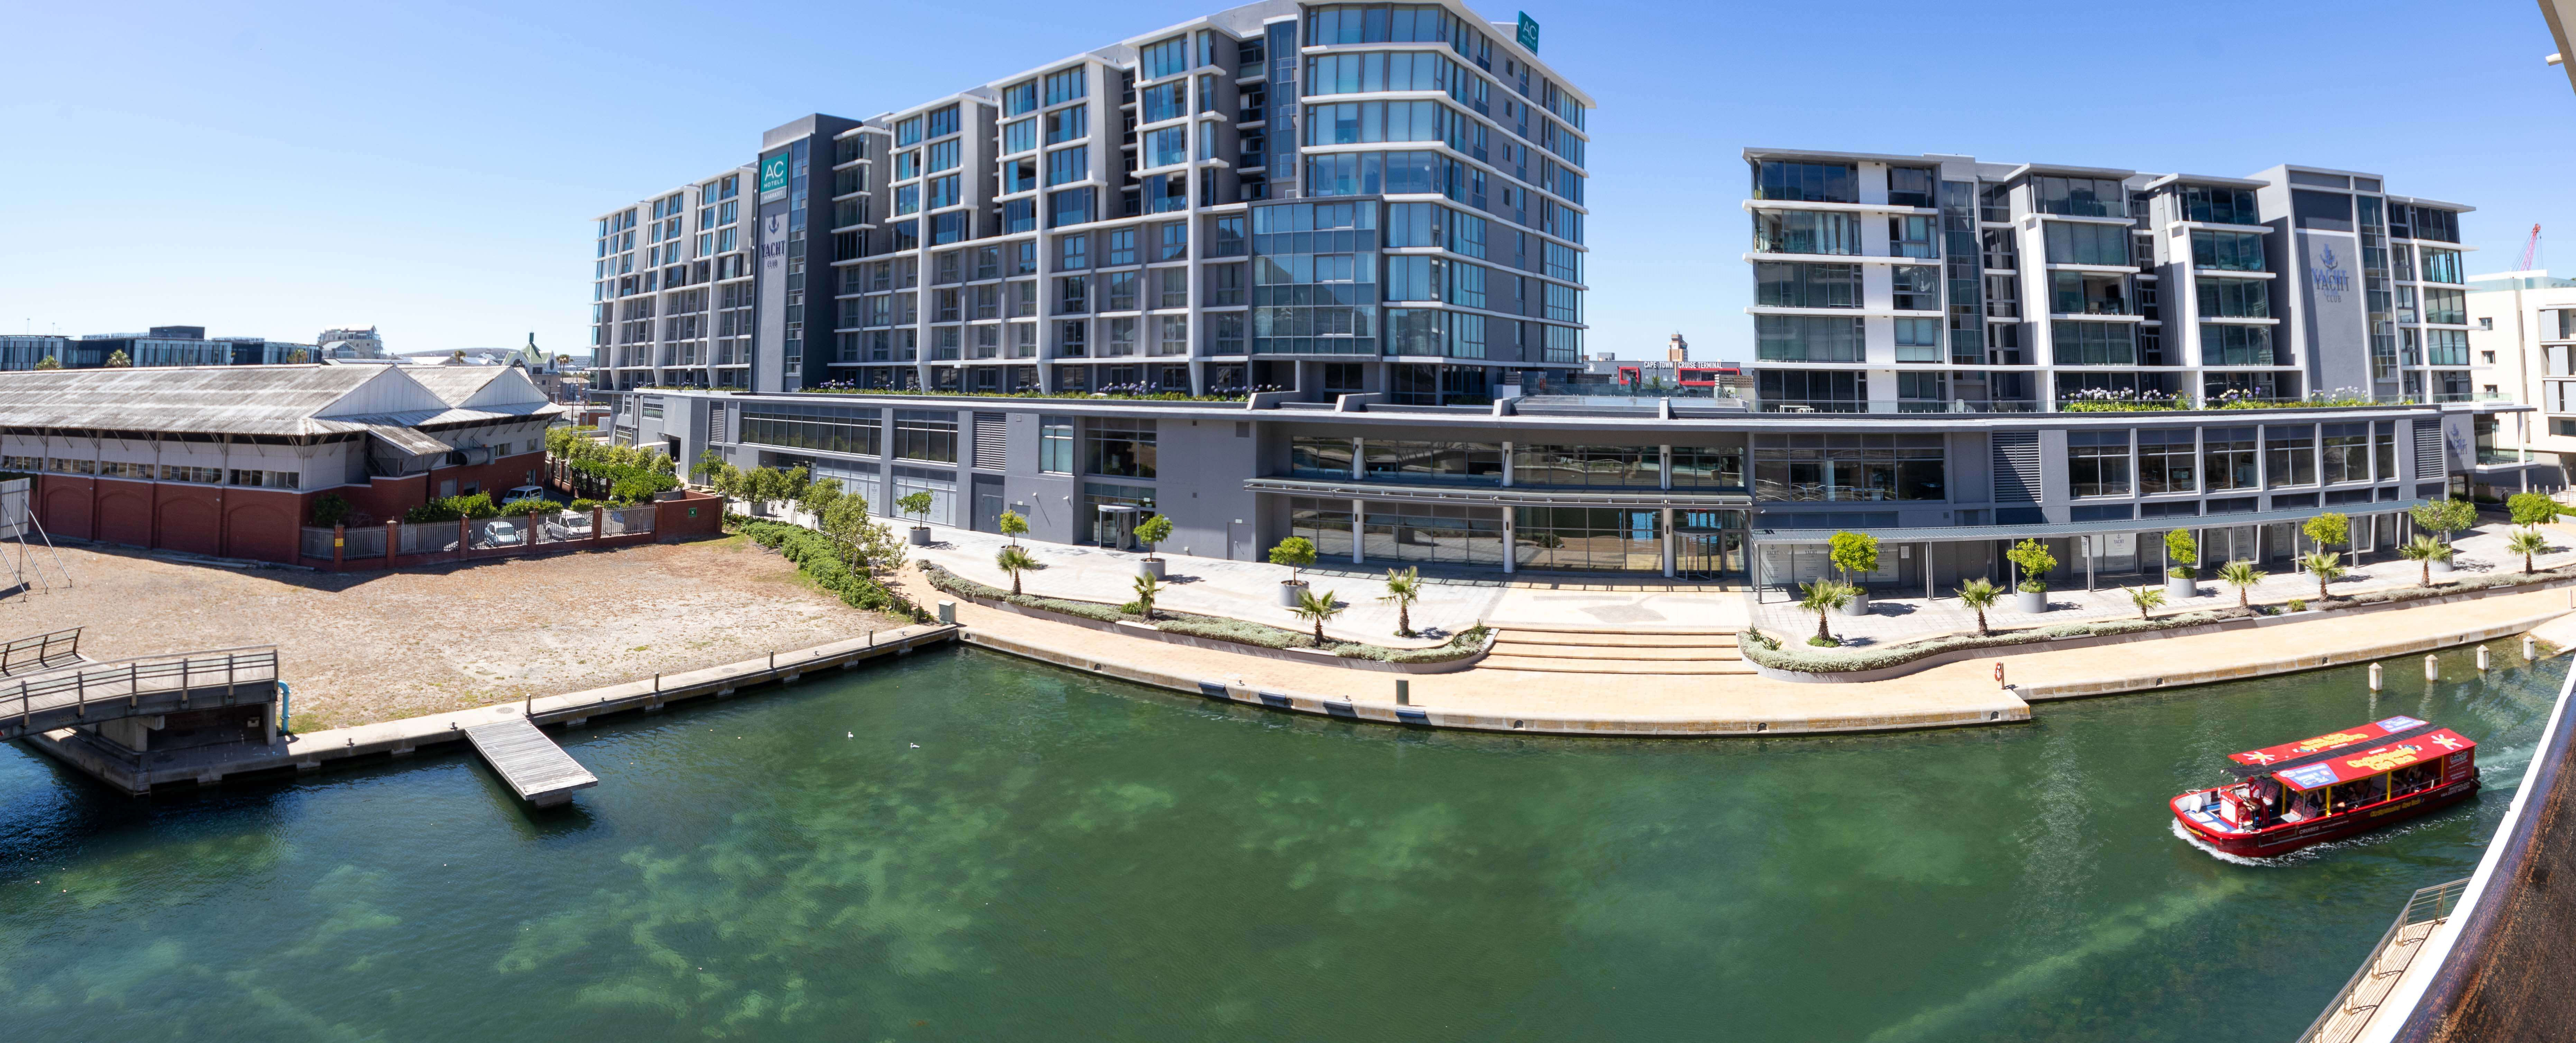 405 Popular Canal Quays at the V and A Waterfront